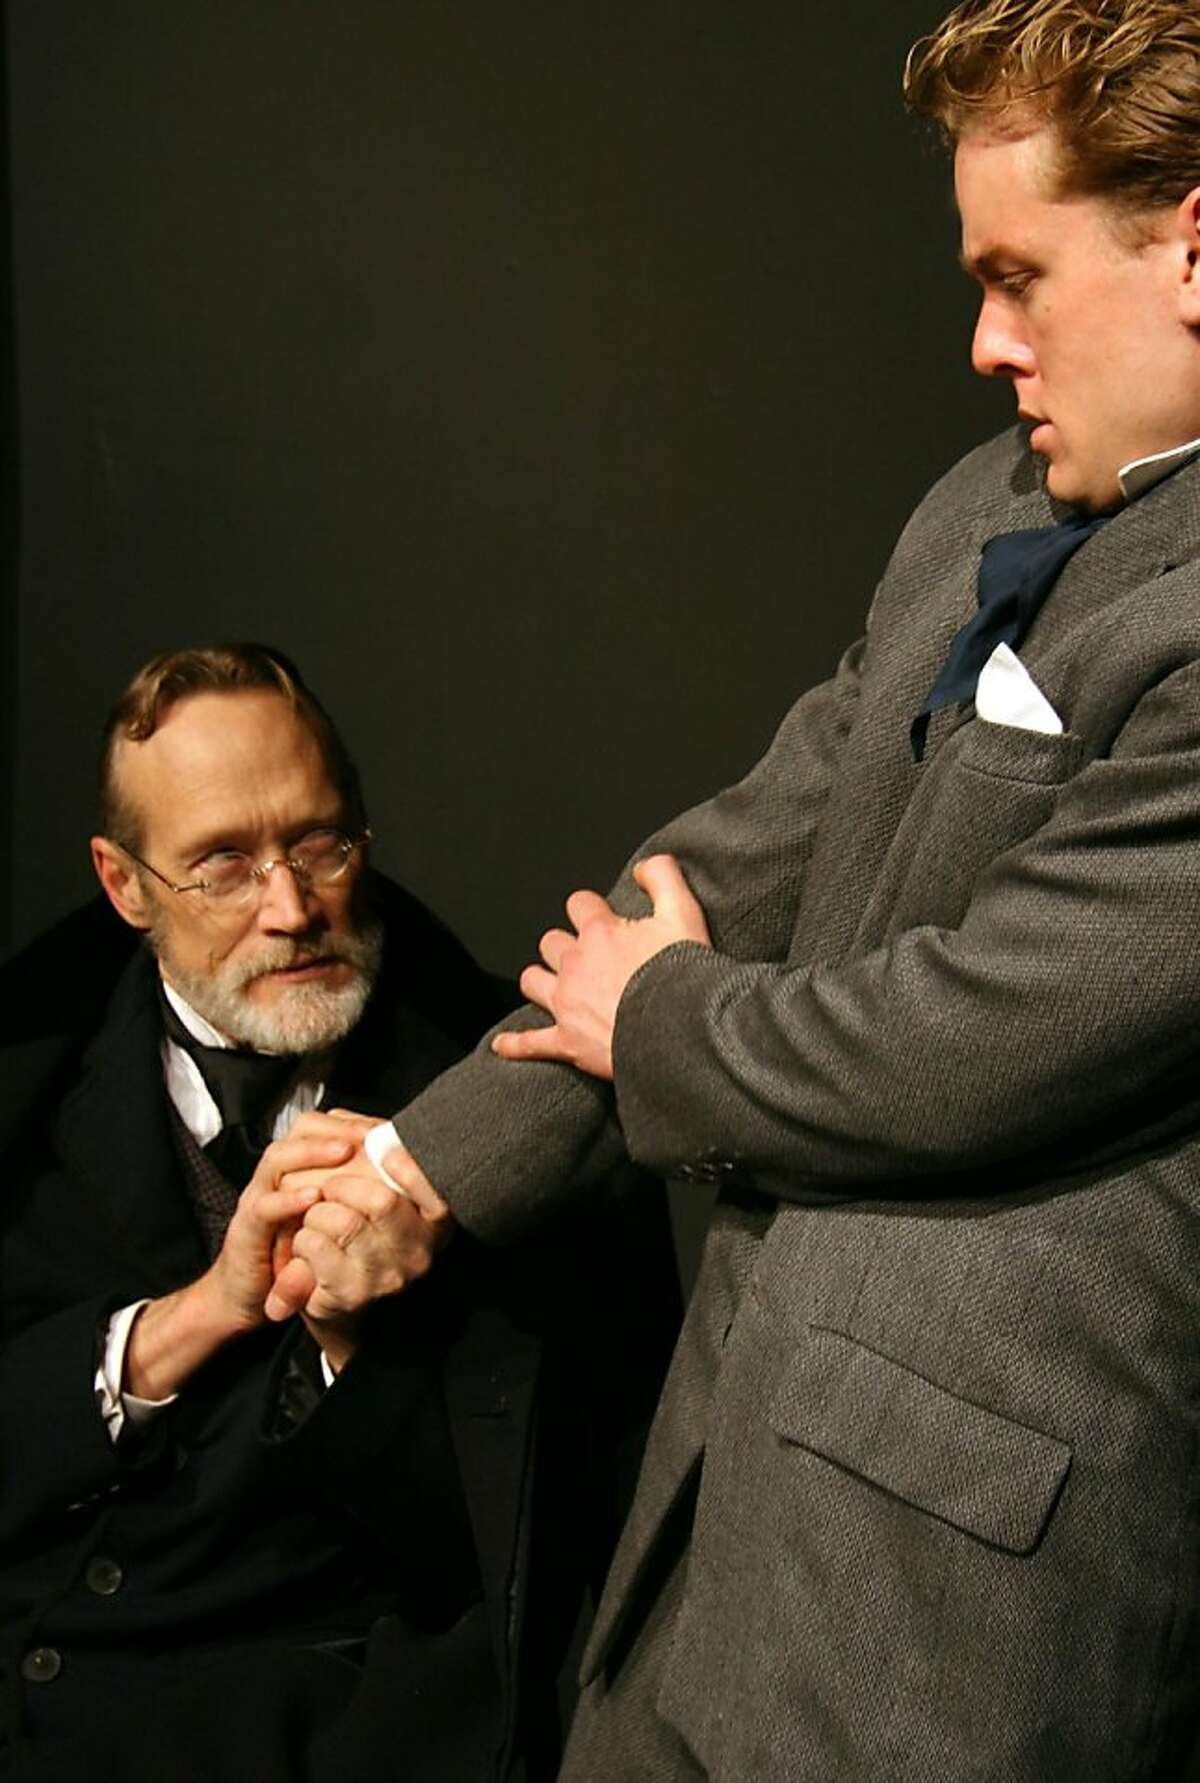 The Old Man (l, James Carpenter) shakes The Student's (r, Carl Holvick-Thomas) hand to seal the bargain in The Ghost Sonata, part of Cutting Ball Theater's Strindberg Cycle: The Chamber Plays in Rep